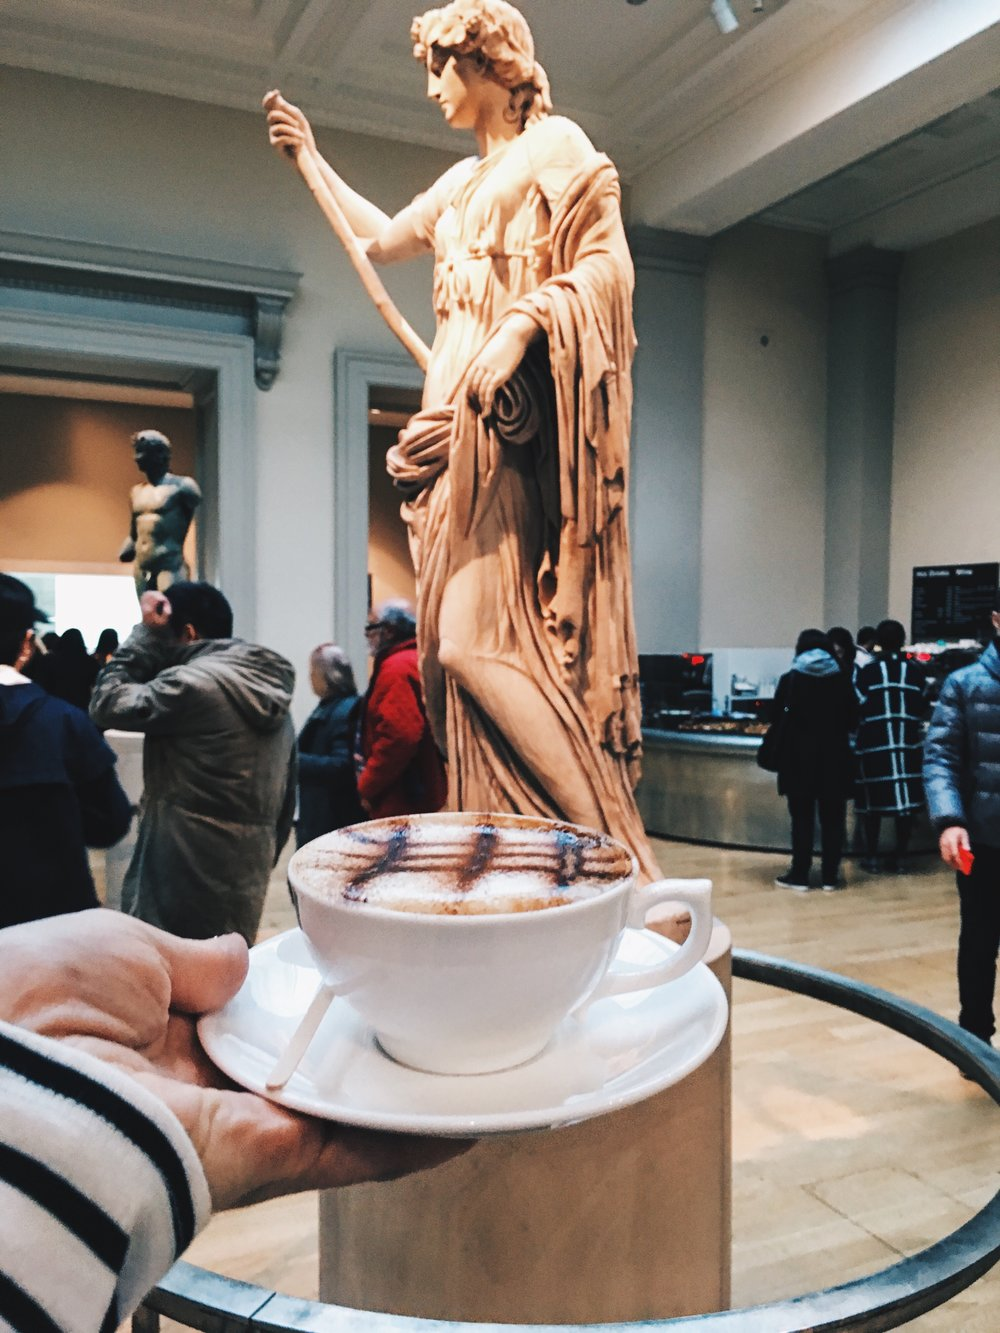 Casually having coffee, just steps away from priceless art. British Museum, London